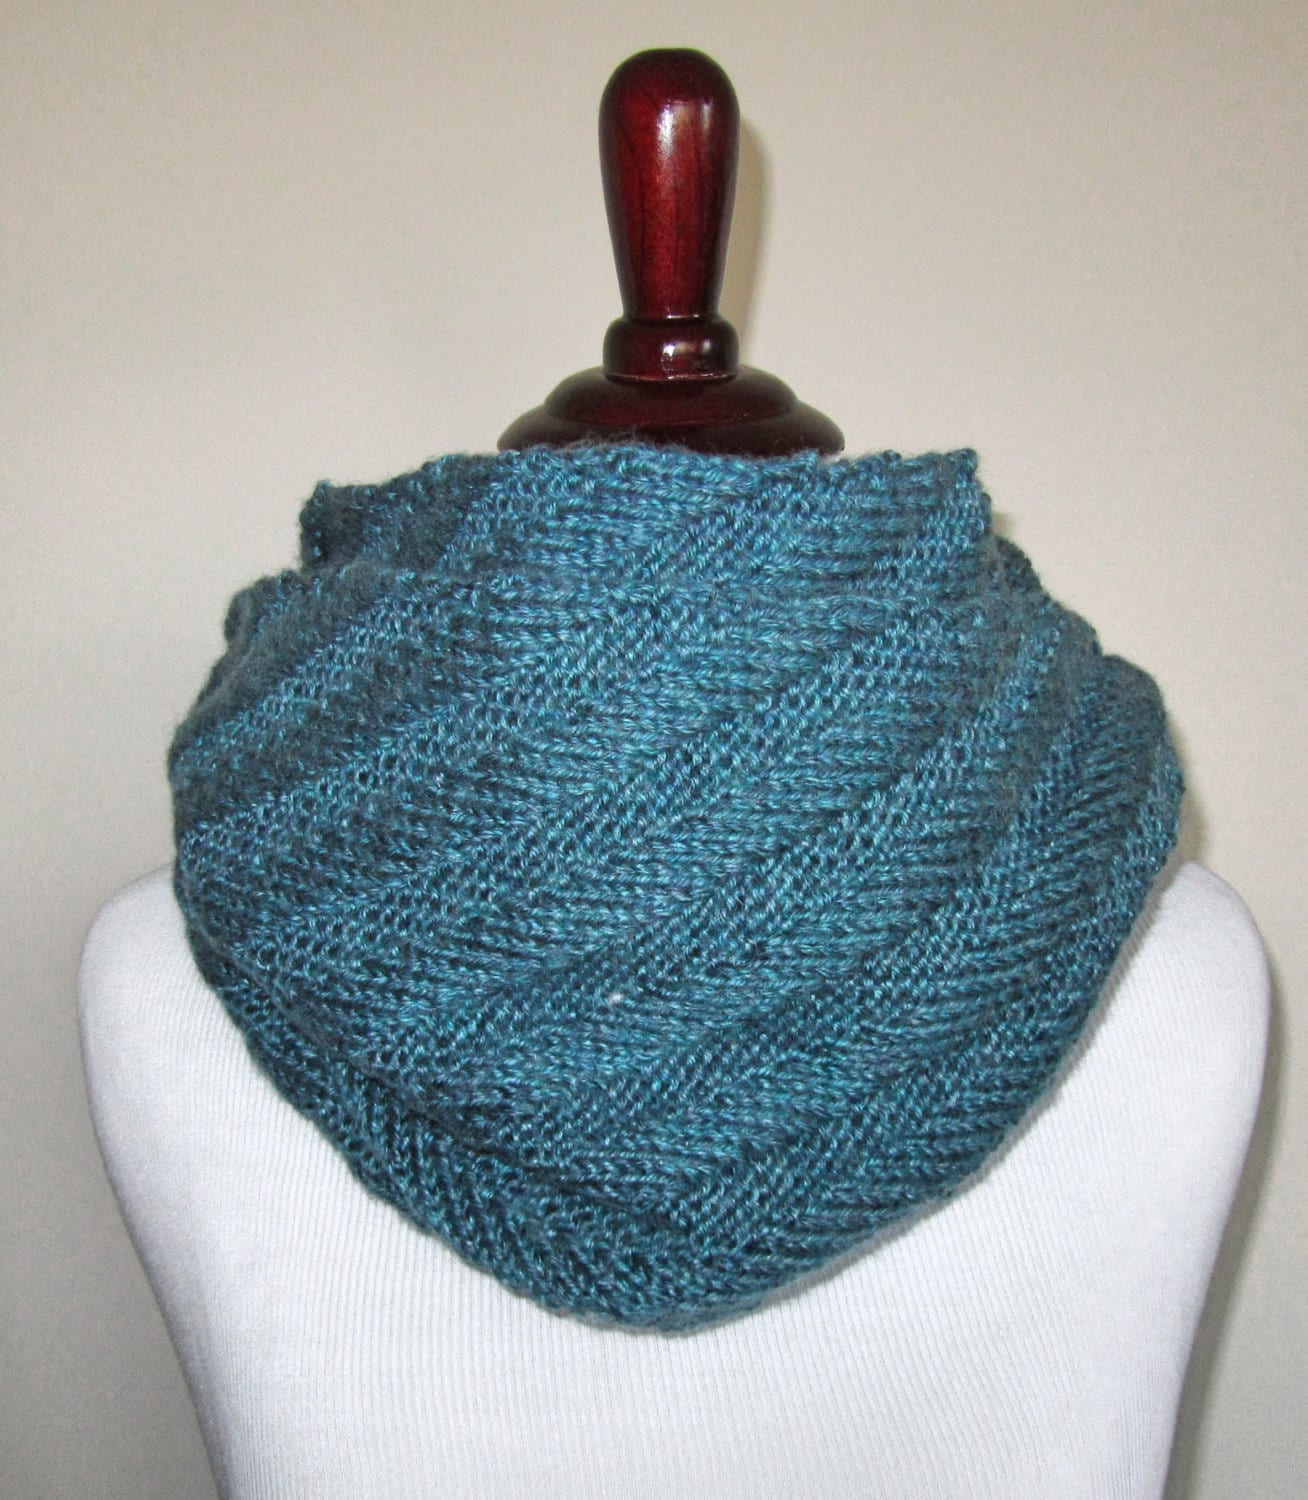 Knitting Pattern Infinity Scarf Straight Needles : Diagonal Infinity Scarf Knitting Pattern PDF